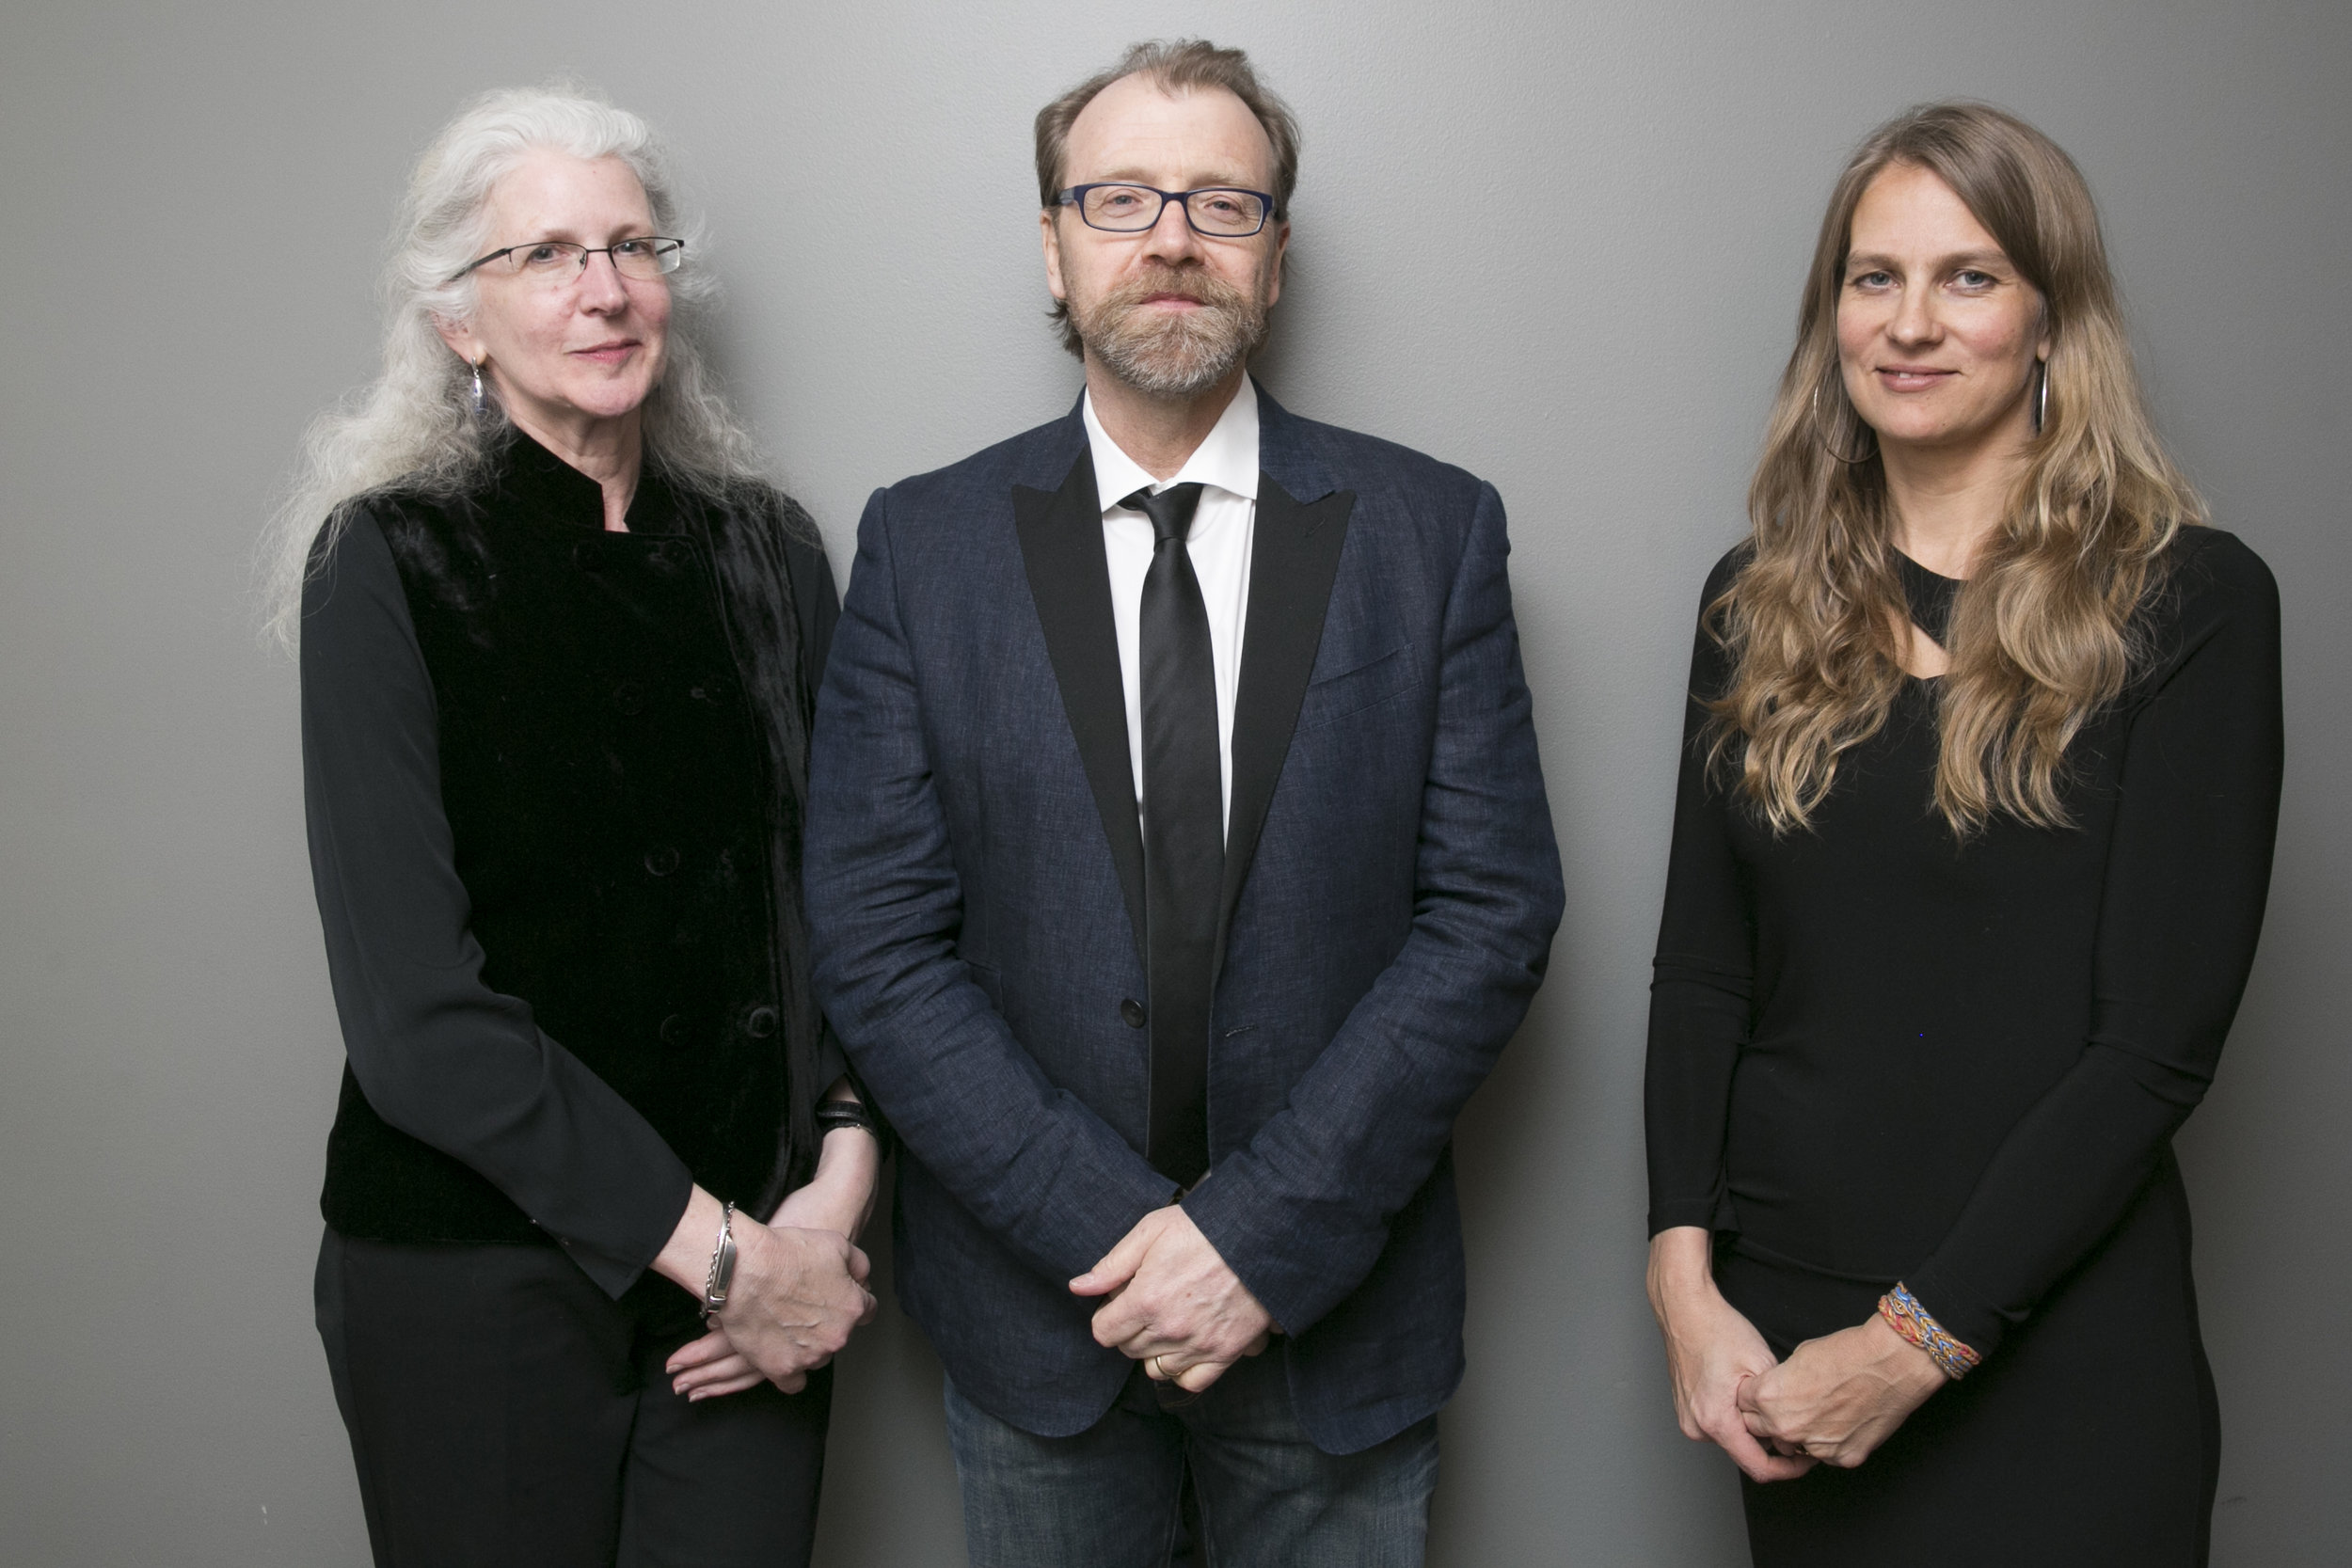 Andrea Barrett, George Saunders, and Rebecca Lee. ( Event photos by Beowulf Sheehan.)